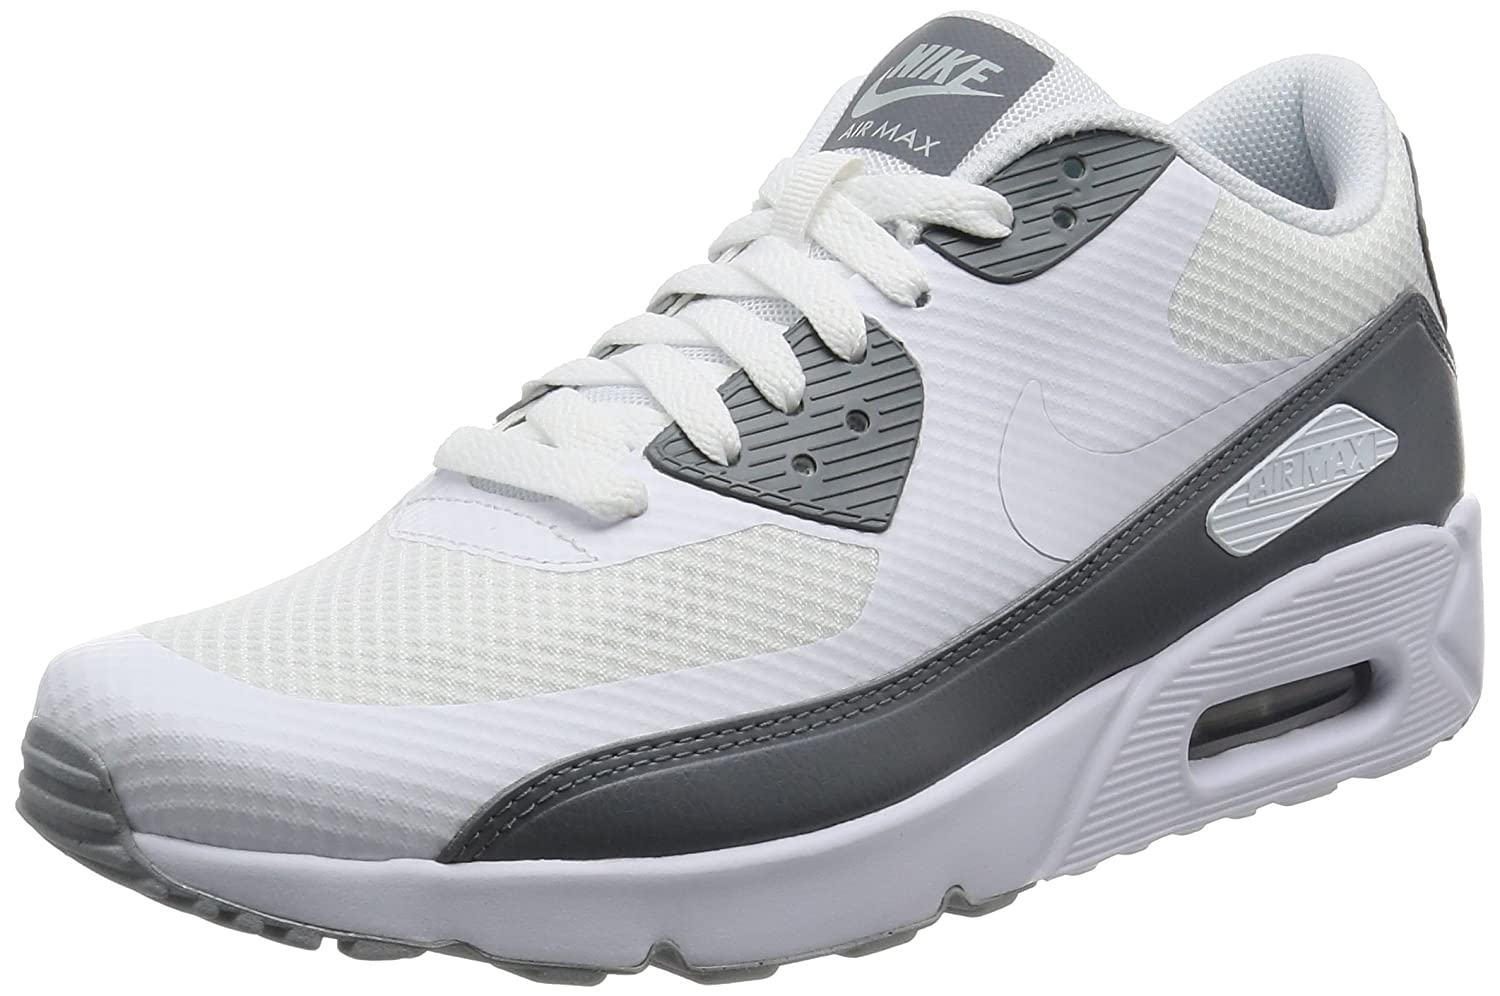 huge discount 0cc0c 0720e Amazon.com | NIKE Men's Air Max 90 Ultra 2.0 Essential White/White Cool  Grey Running Shoe 10 Men US | Road Running